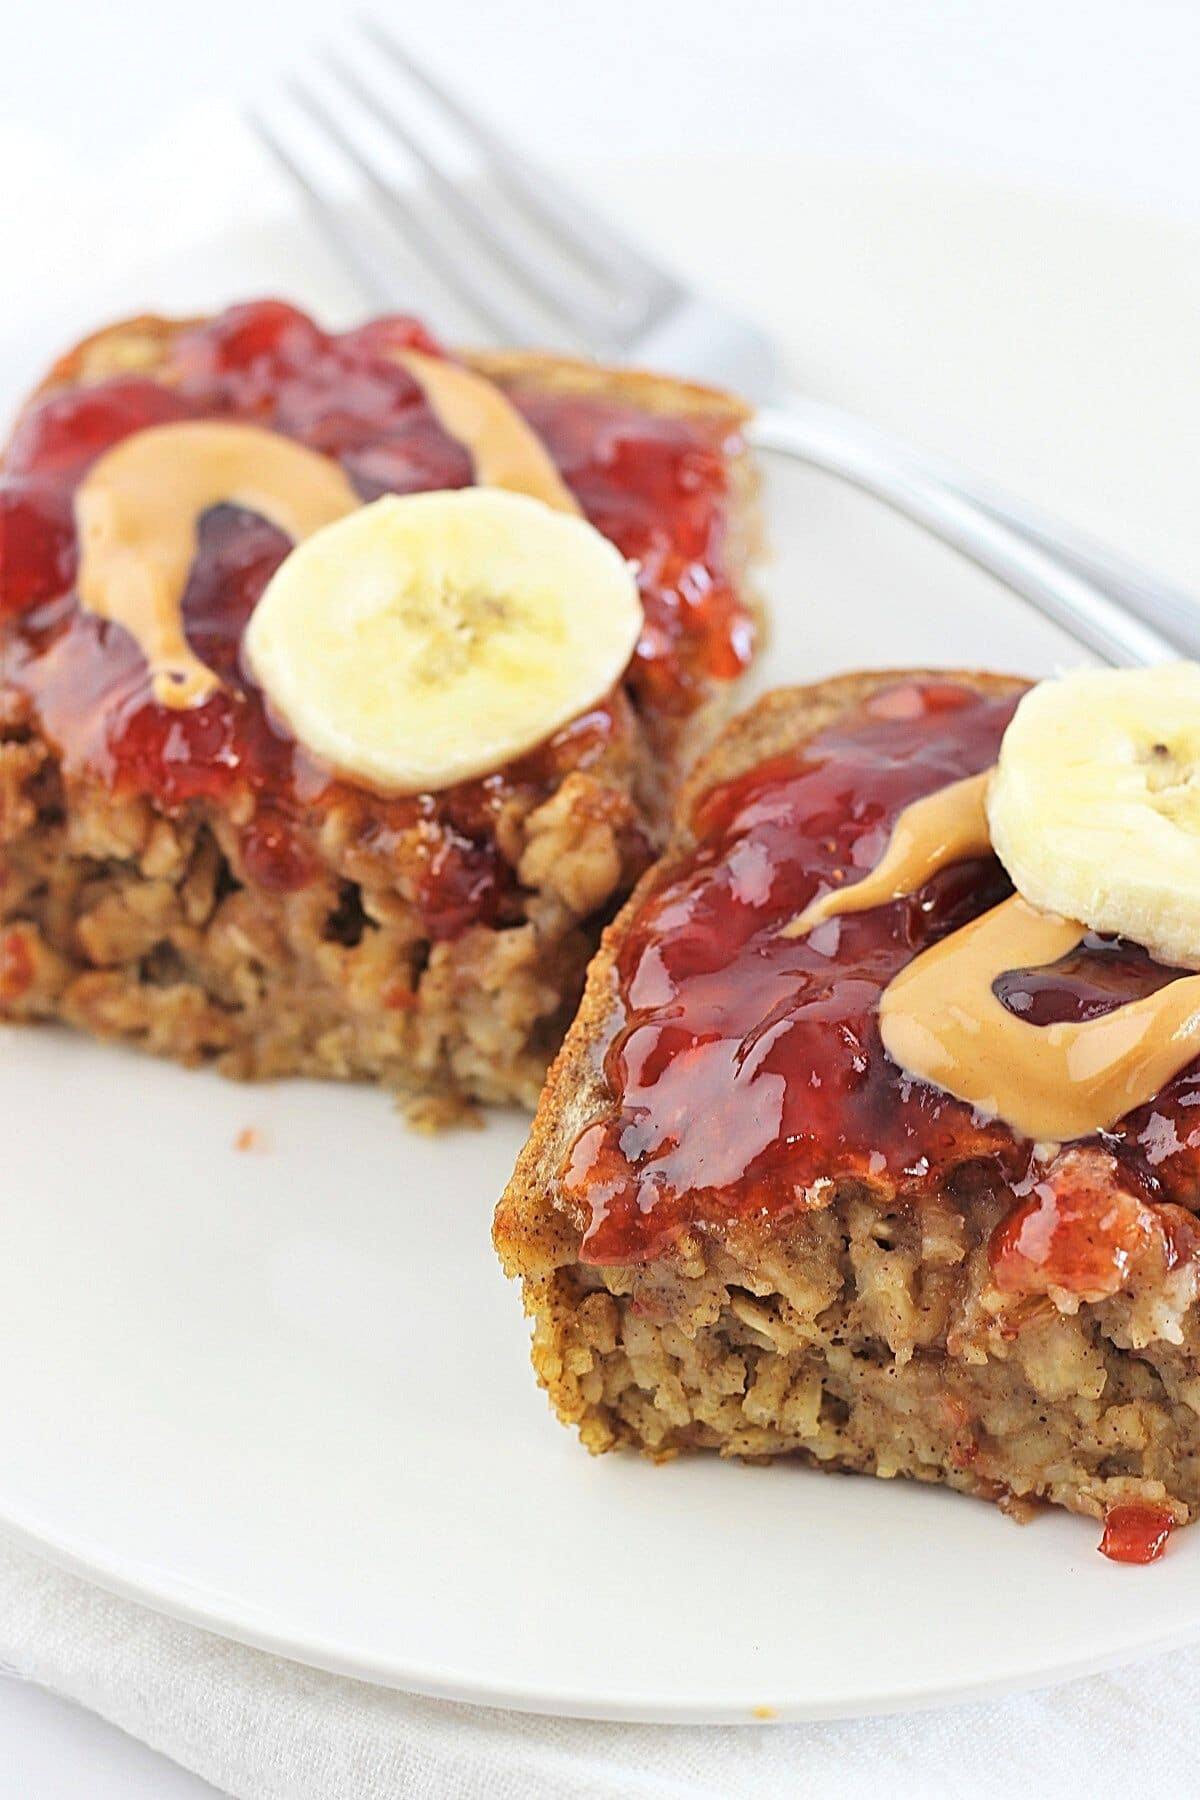 two pieces of peanut butter banana baked oatmeal on a white plate with a fork